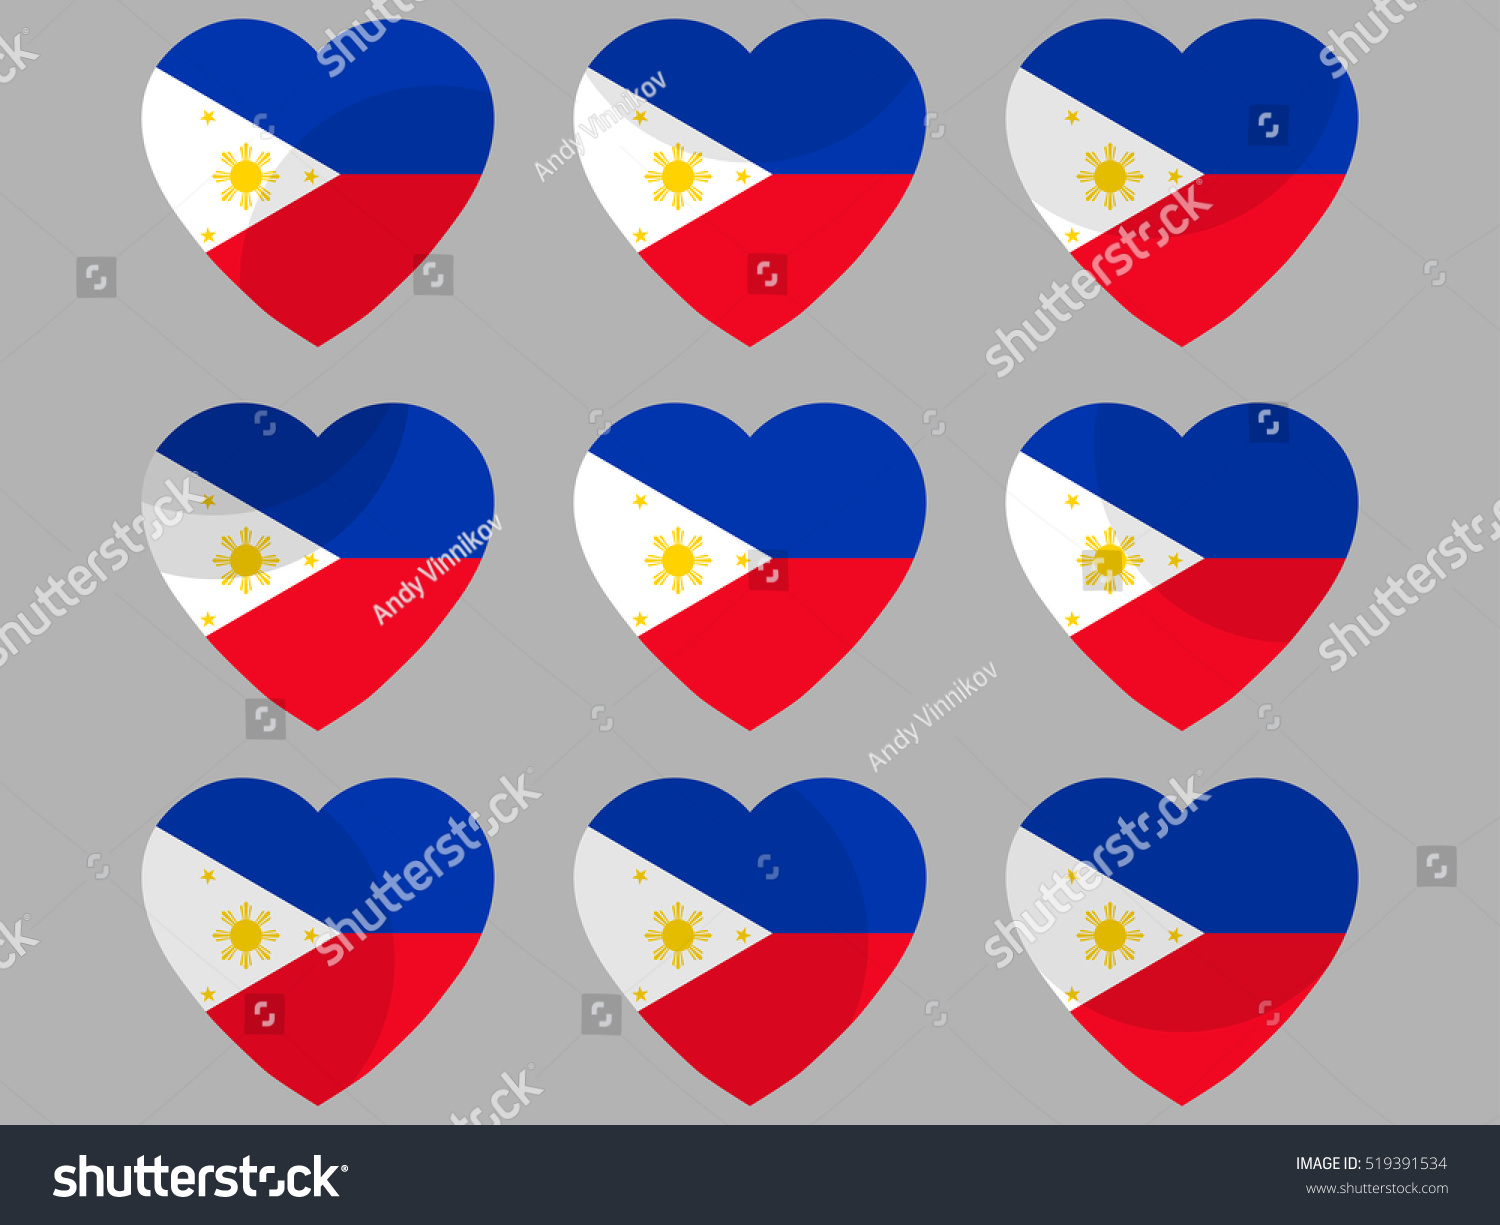 7 must song phillippines Download free music downloader for windows  including windows 10, windows 7, windows 8  you can determine what services the program must use to execute .